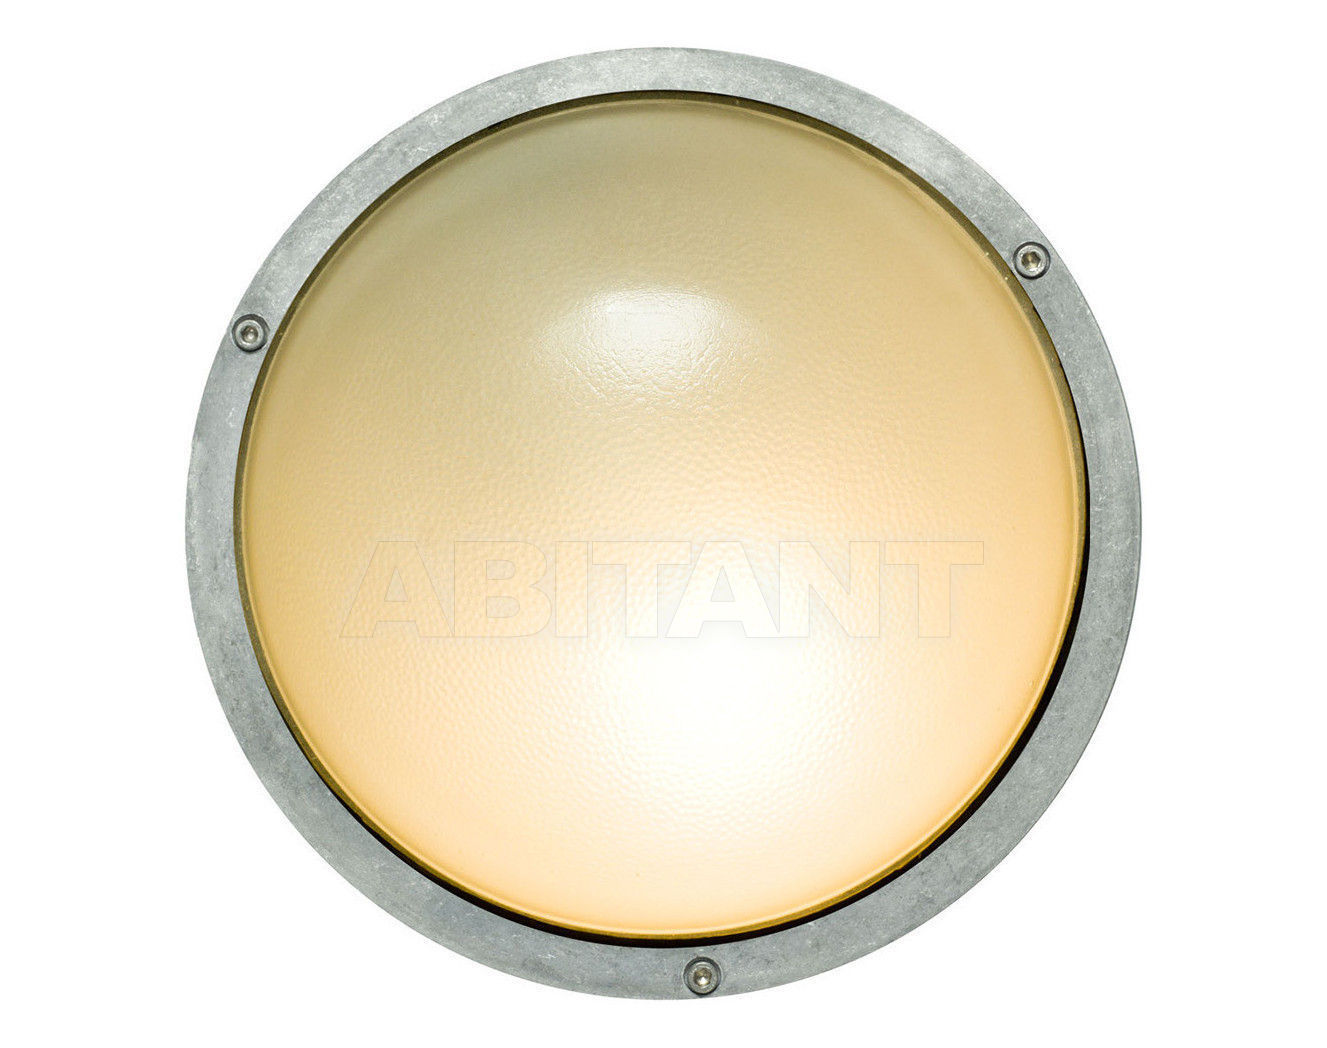 Купить Светильник Davey Lighting Bulkhead Lights 8134/AL/E27